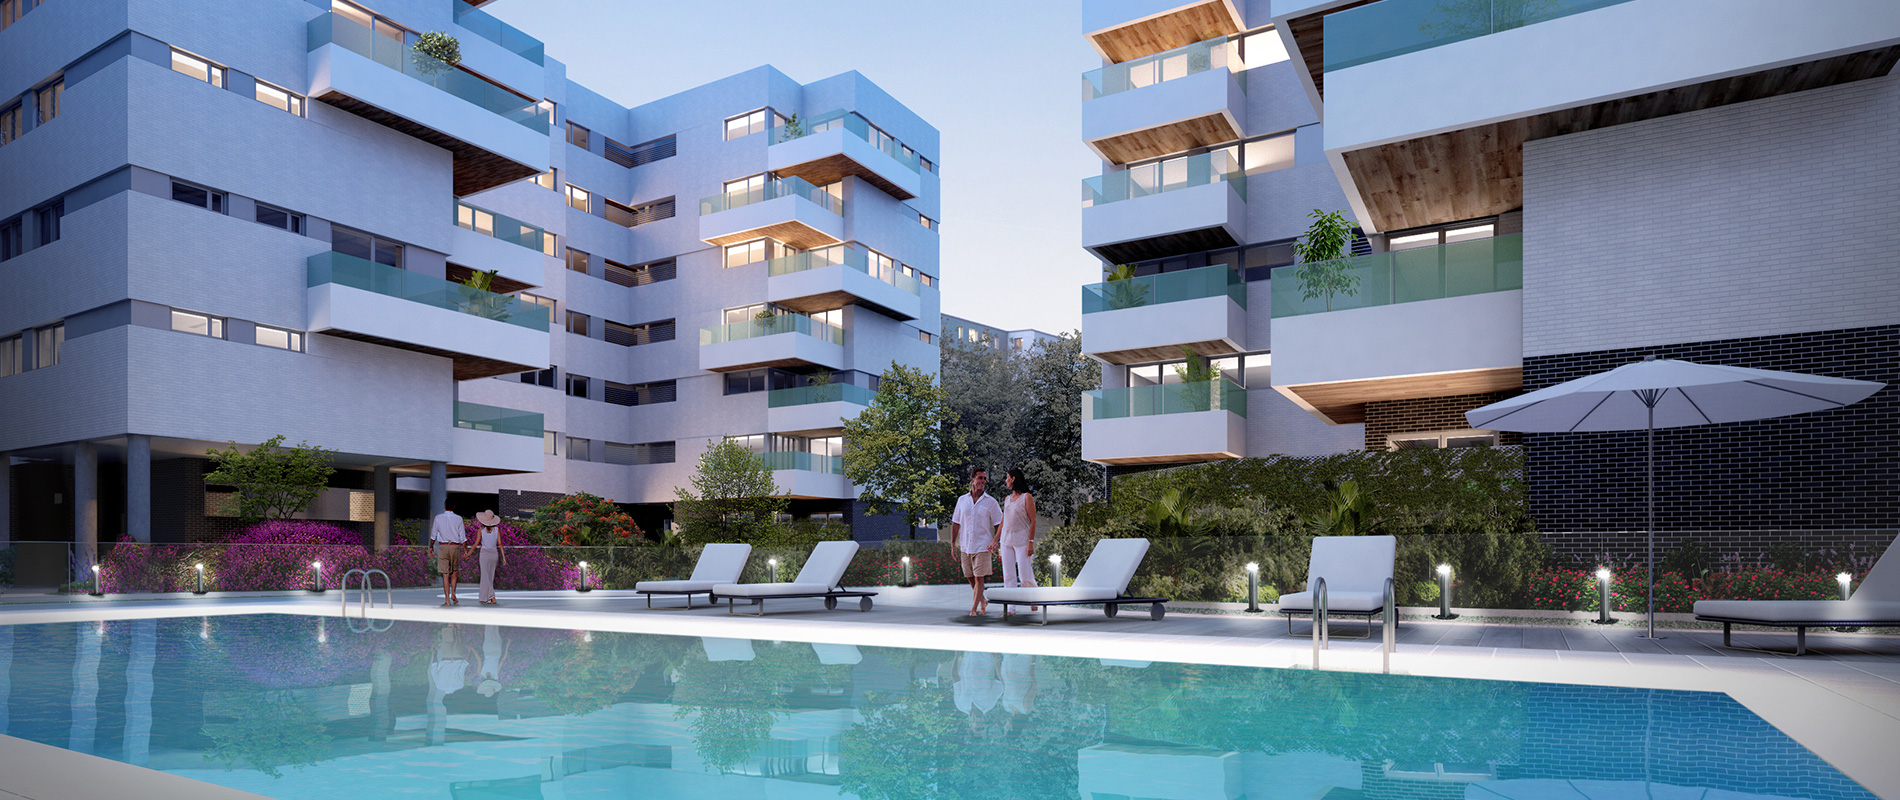 Residencial madrid 127 getafe for Piscina getafe